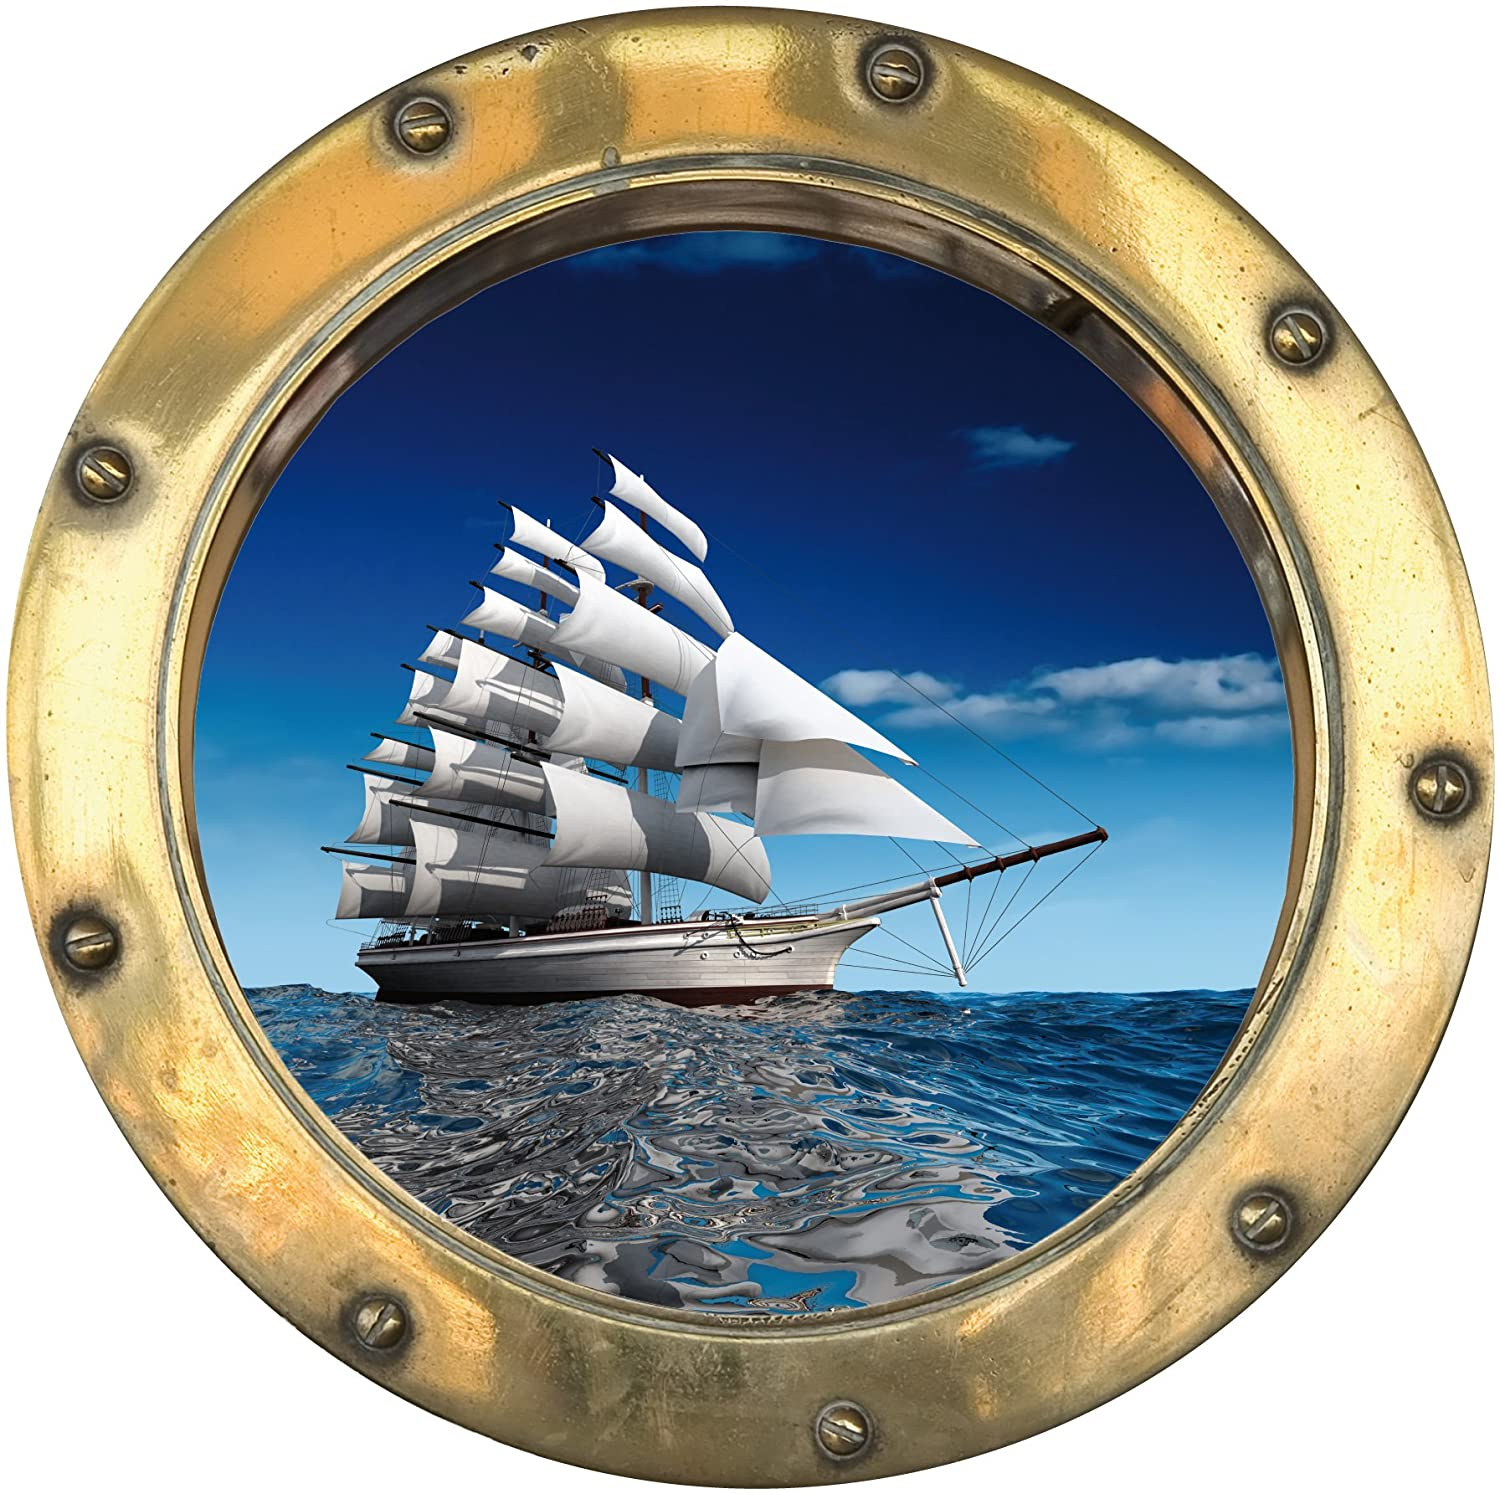 H303 wall sticker optical illusion porthole boat 30 x 30 cm amazon co uk kitchen home